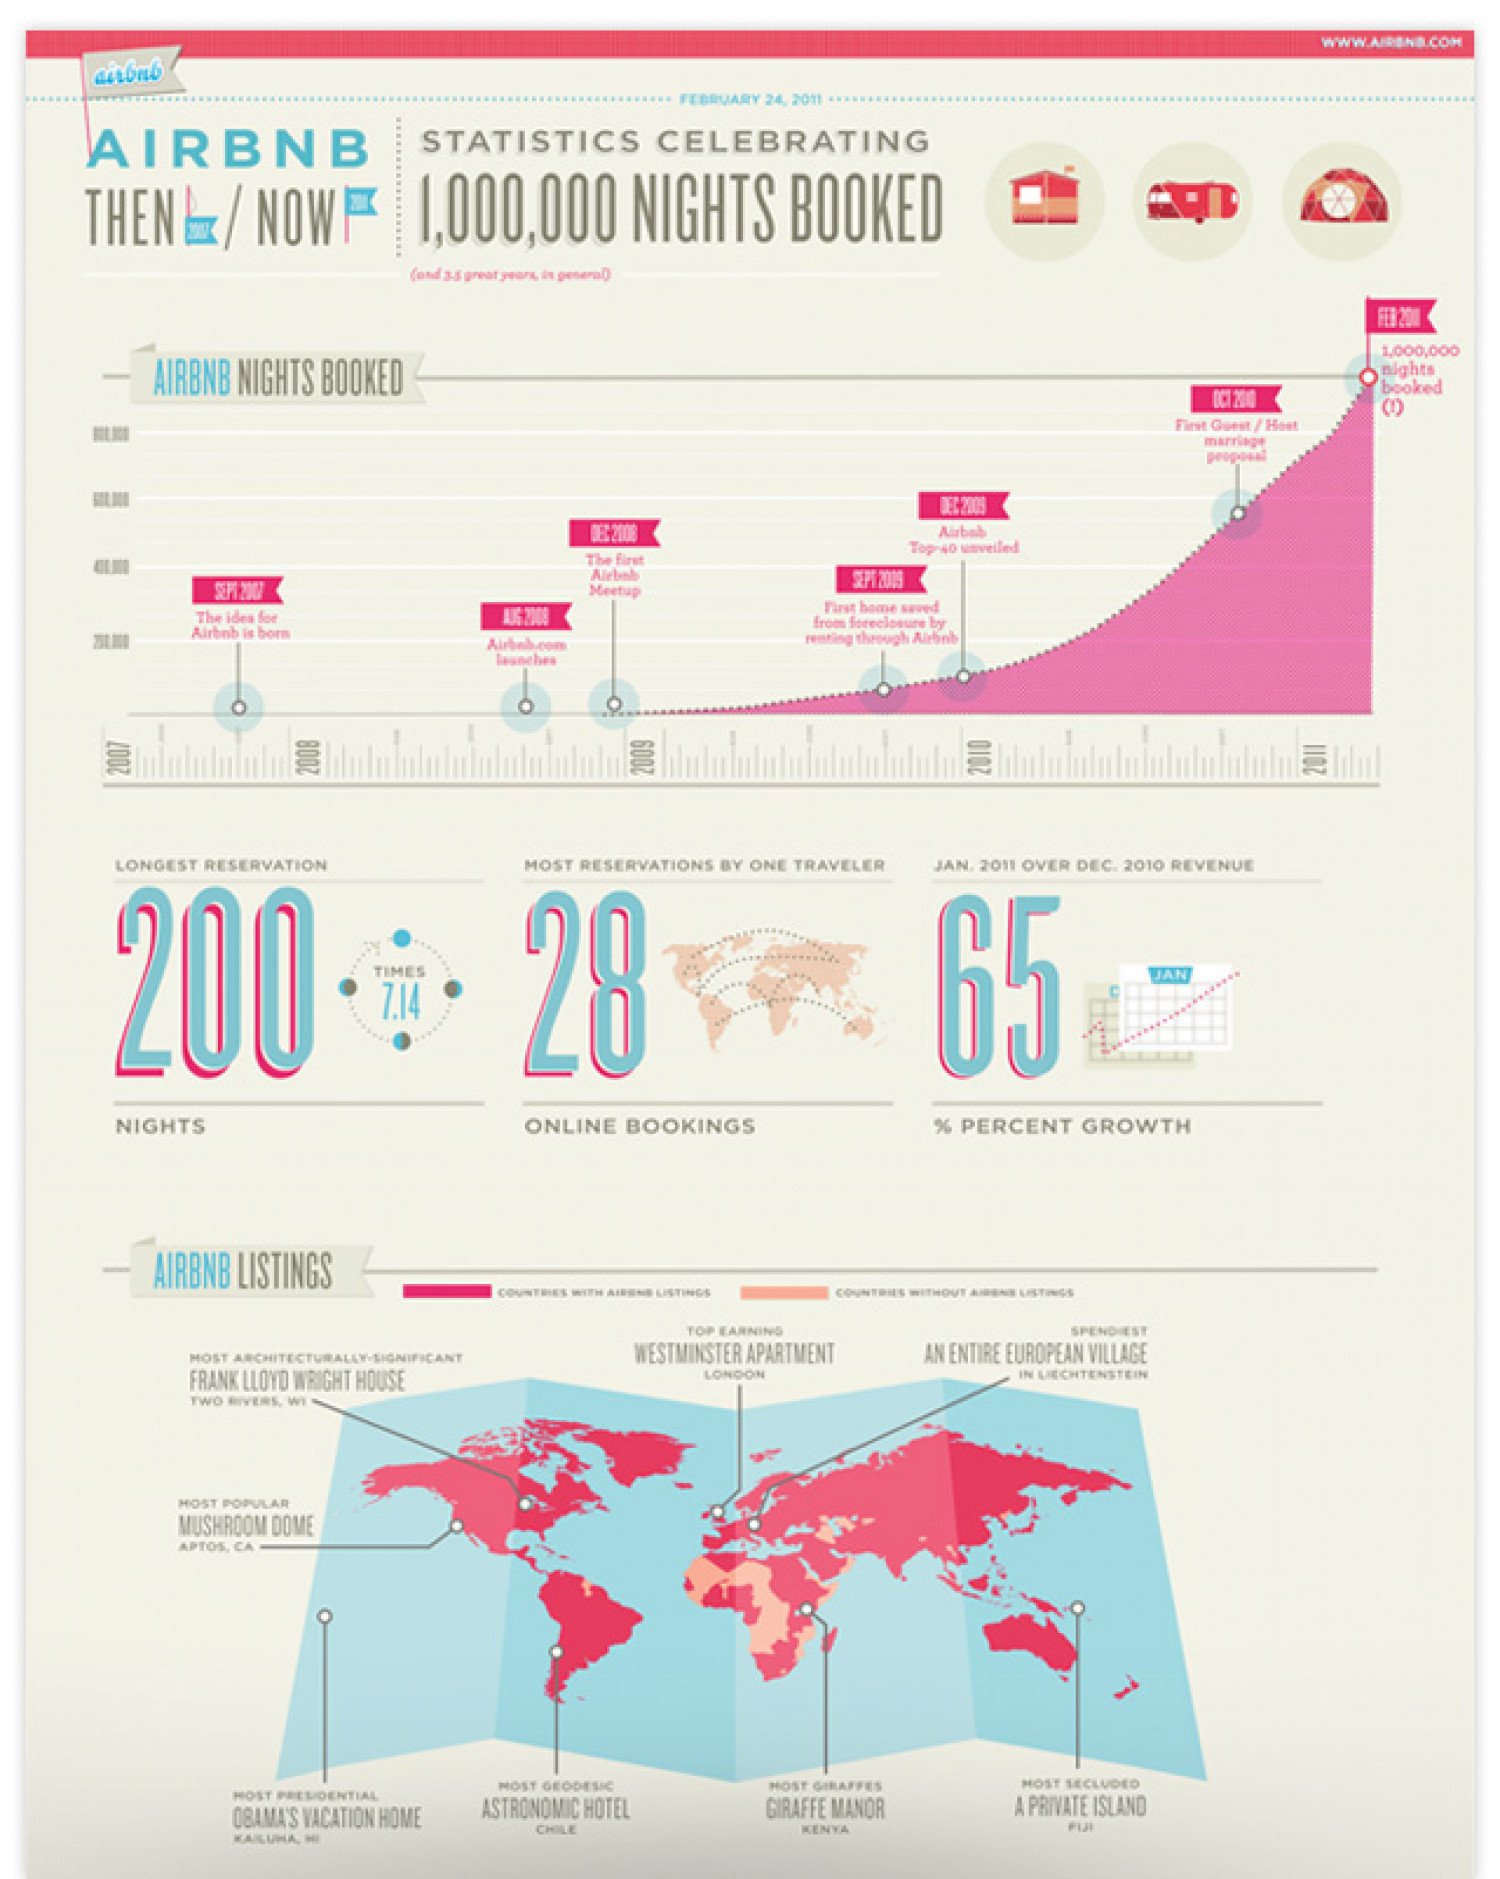 Airbnb Celebrates 1,000,000 Nights Booked! Infographic